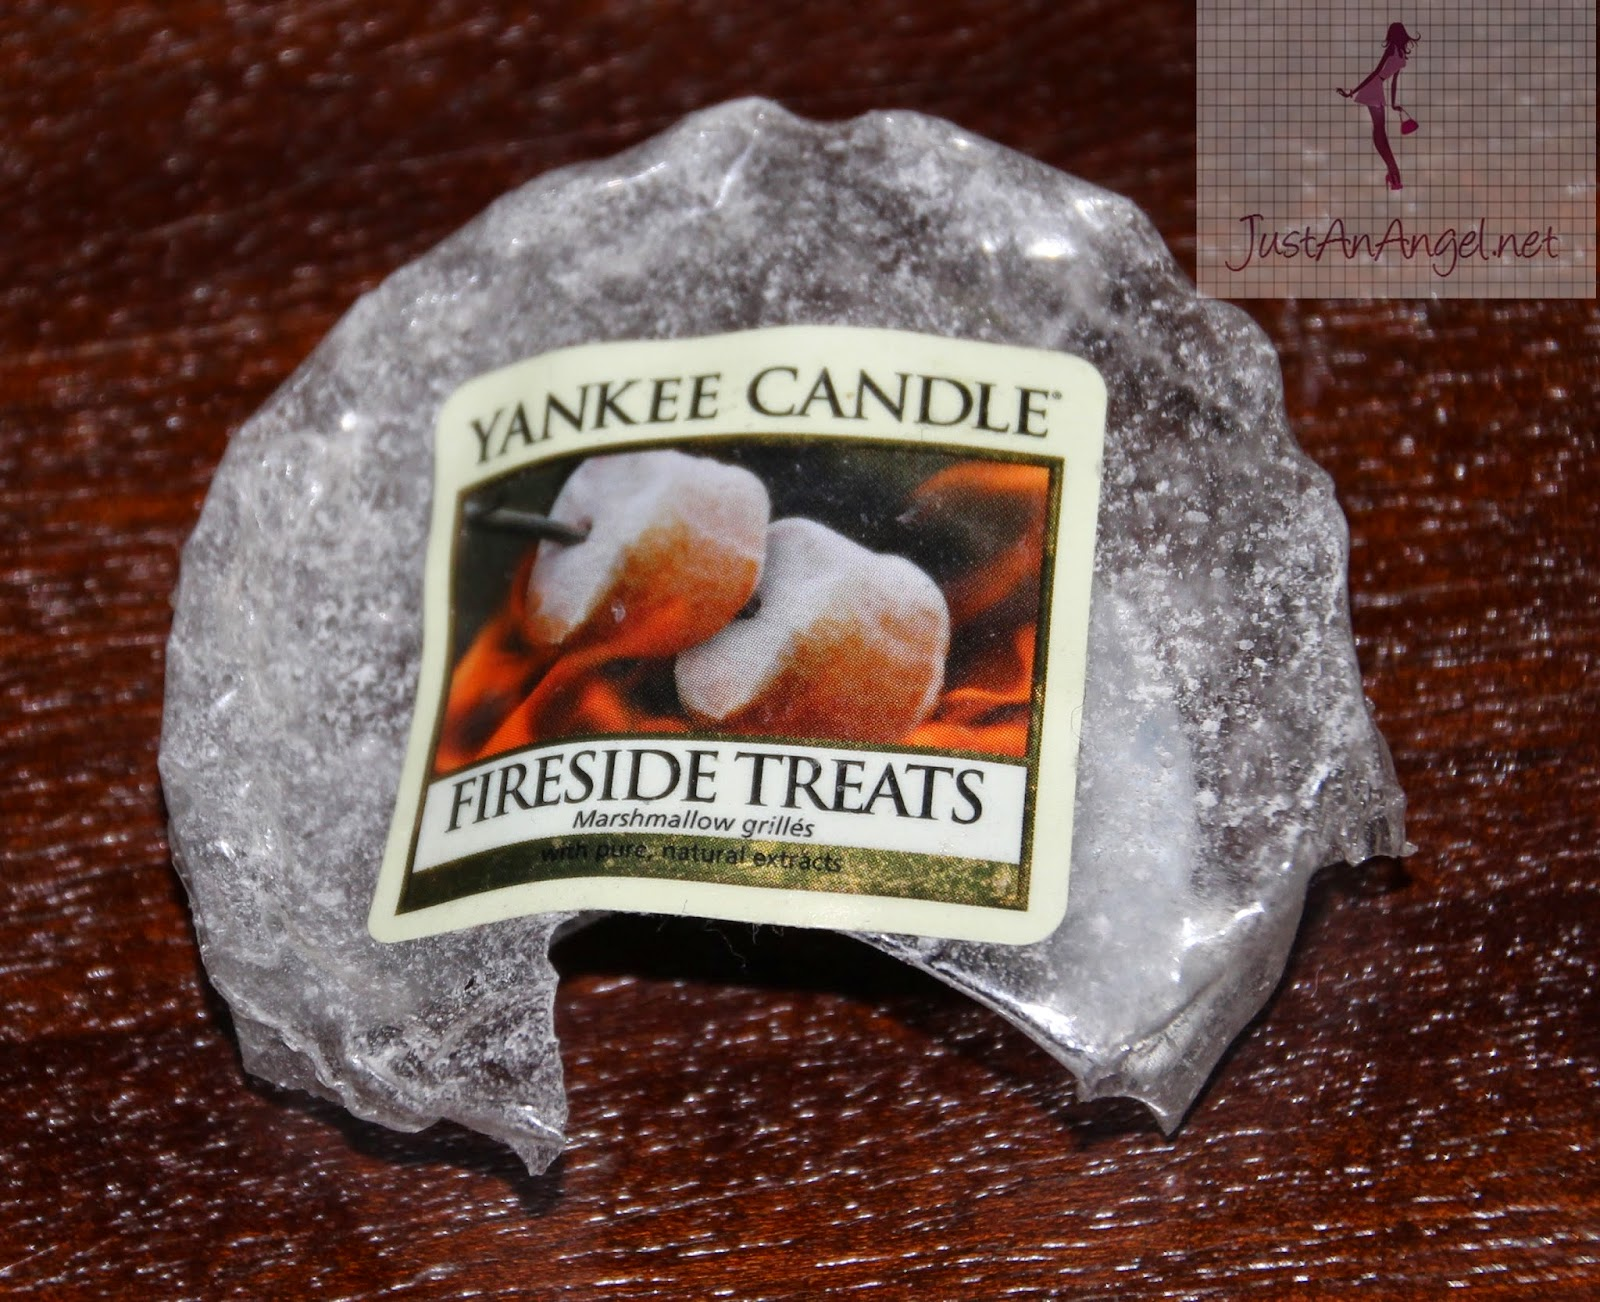 tarta Yankee candle Fireside Treats